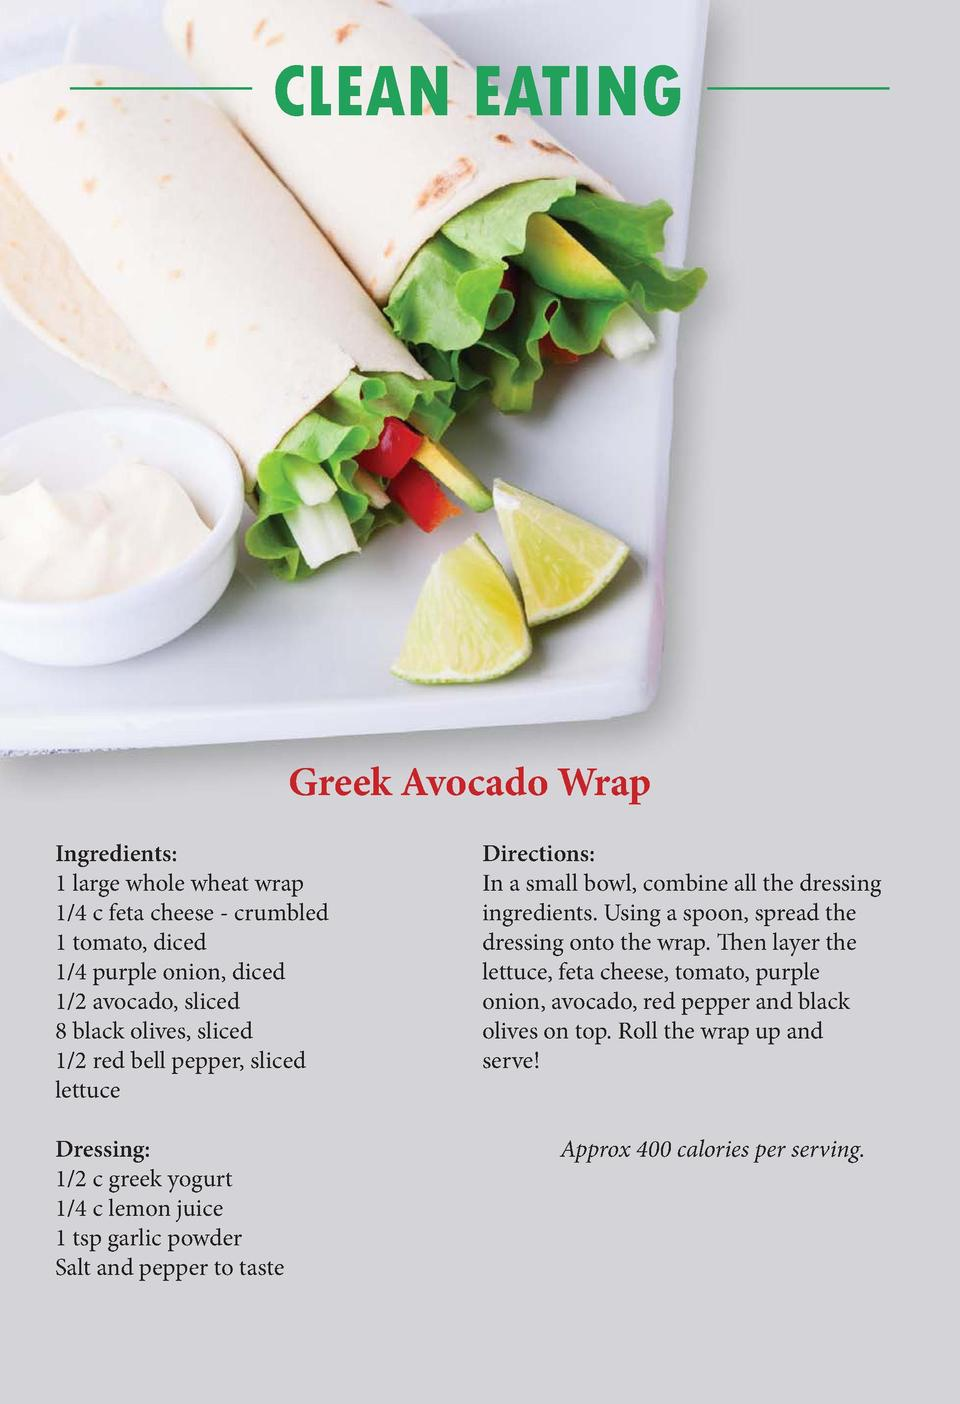 www.   vetownslink.com  www.   vetownslink.com  CLEAN EATING  Greek Avocado Wrap Ingredients  1 large whole wheat wrap 1 4...